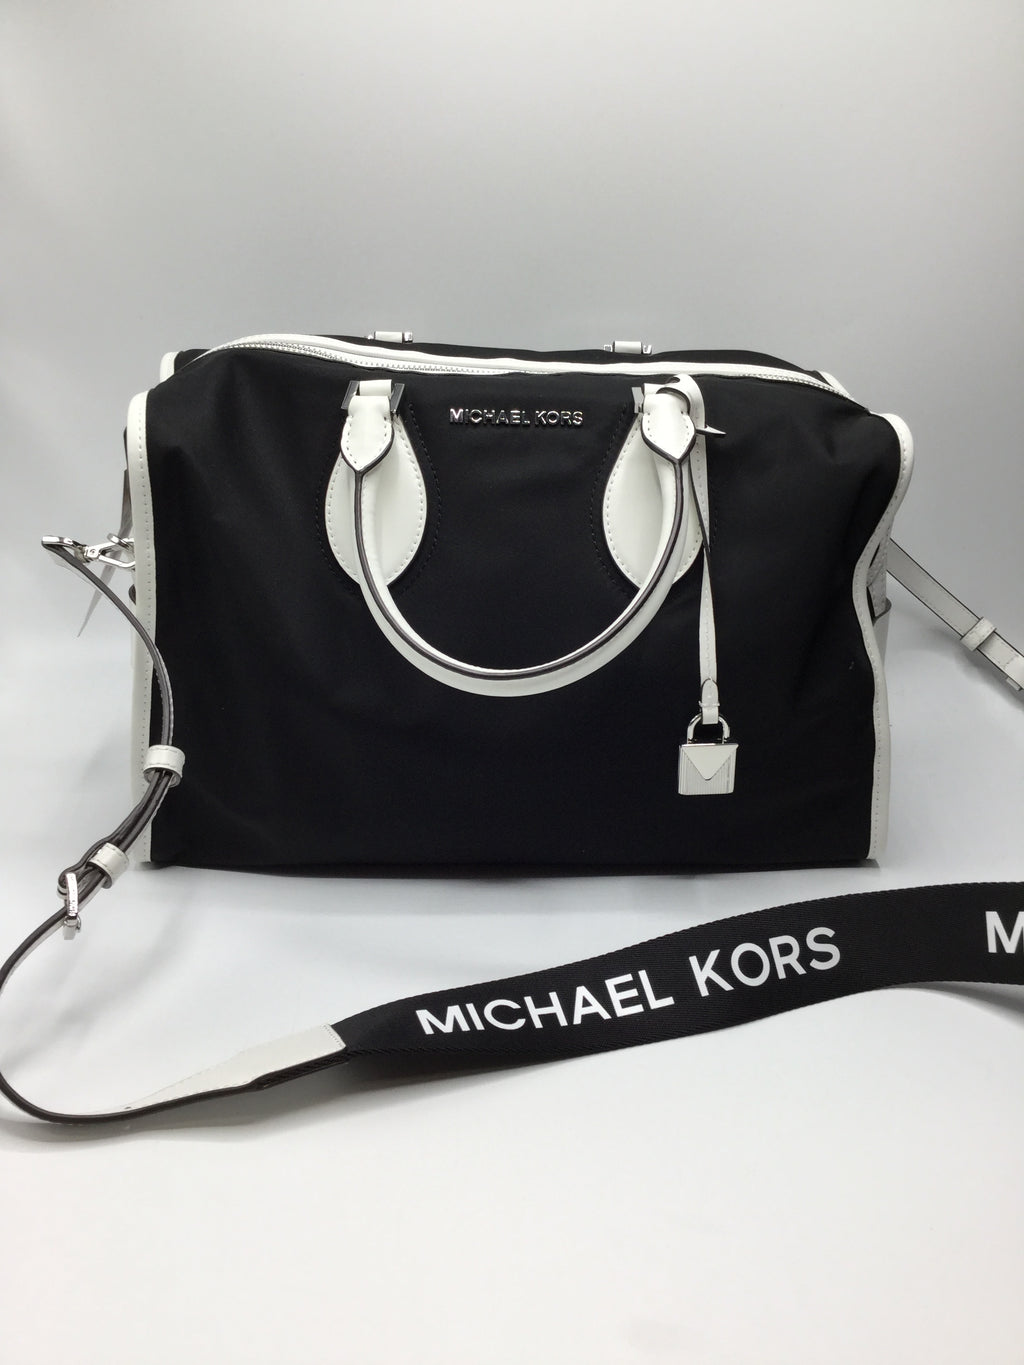 Michael Kors Large Duffle Bag, NWT retail $348